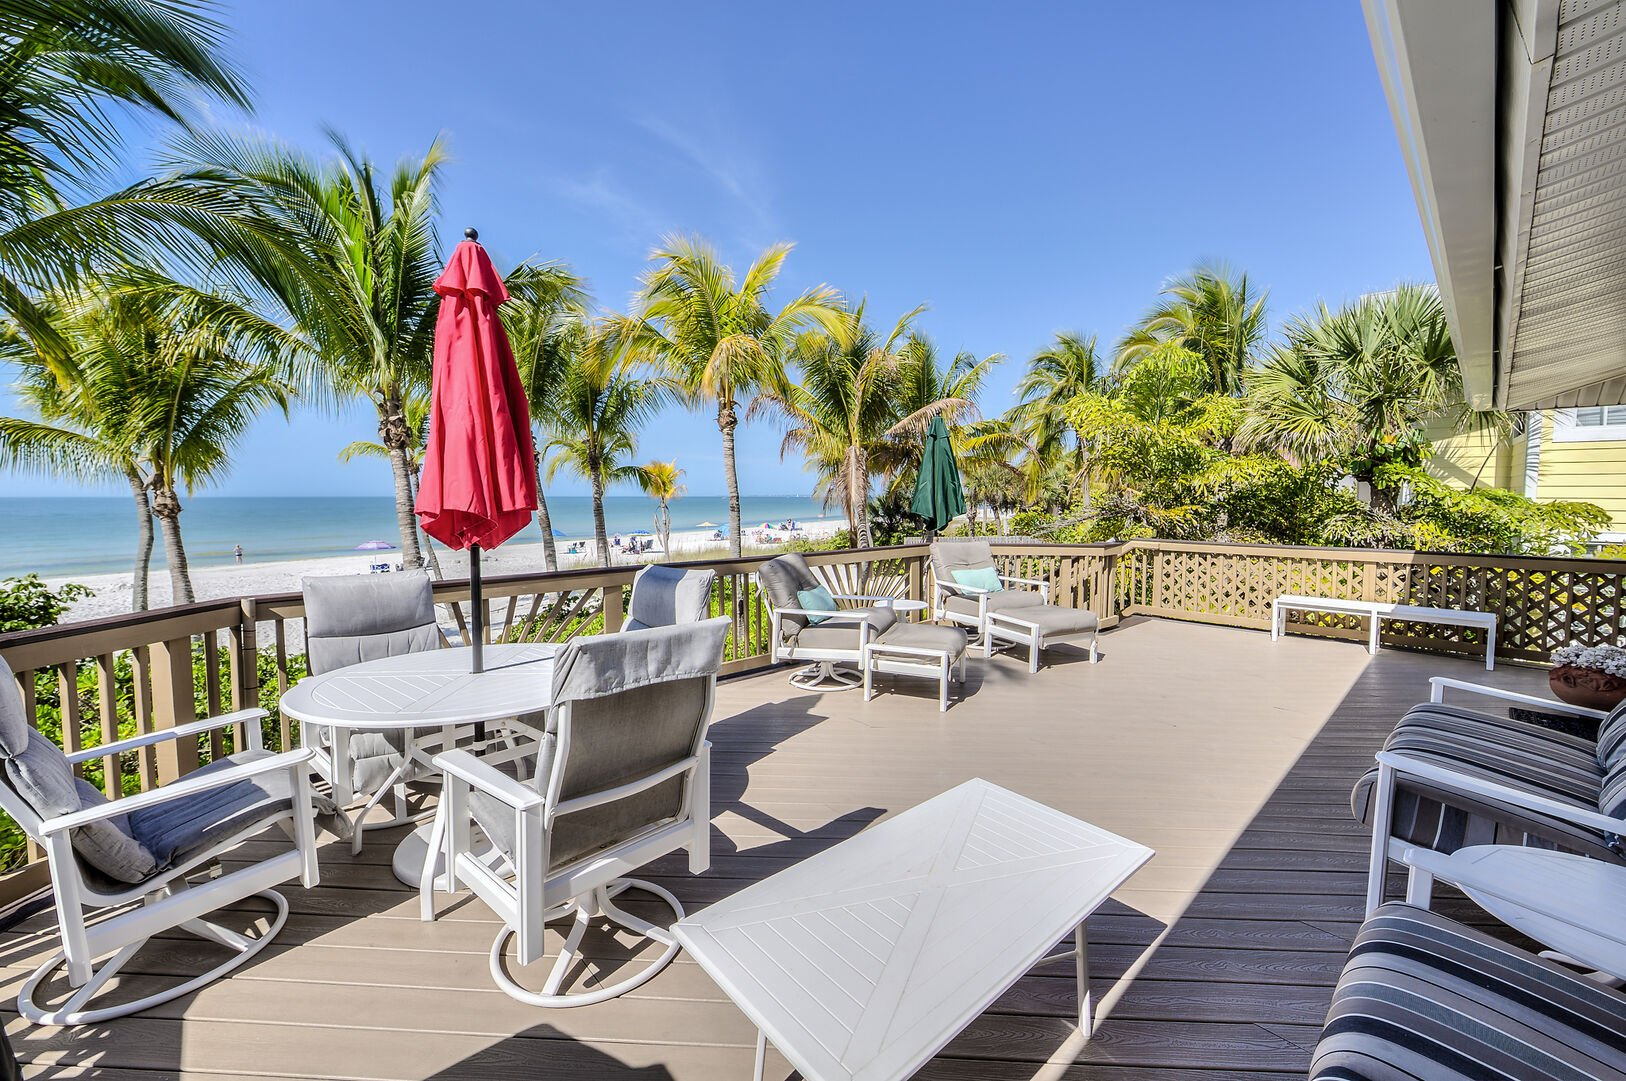 Outdoor Seating on Crow's Nest Deck with Beachfront View